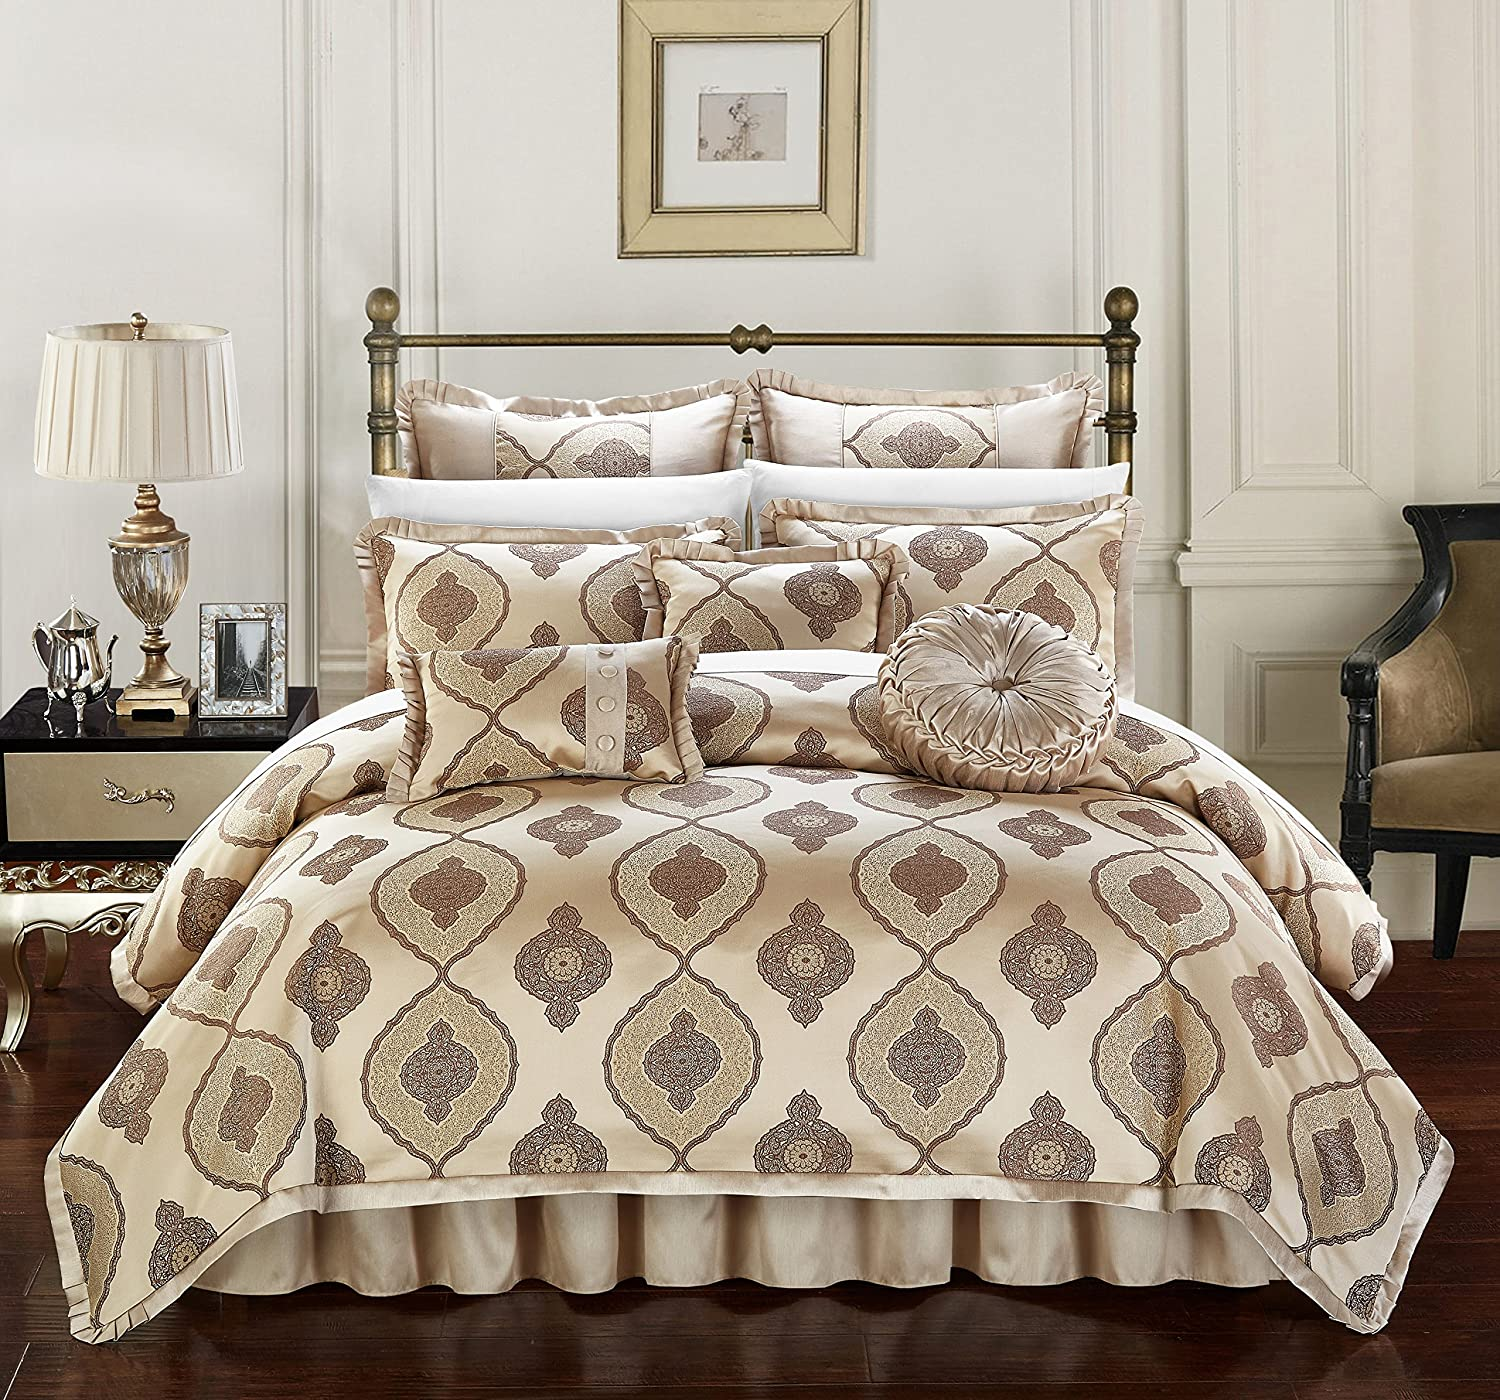 Chic Home Cipriana 9 Piece Comforter Set Jacquard Scroll Faux Silk Bedding with Pleated Flange - Bed Skirt Decorative Pillows Shams Included King Gold